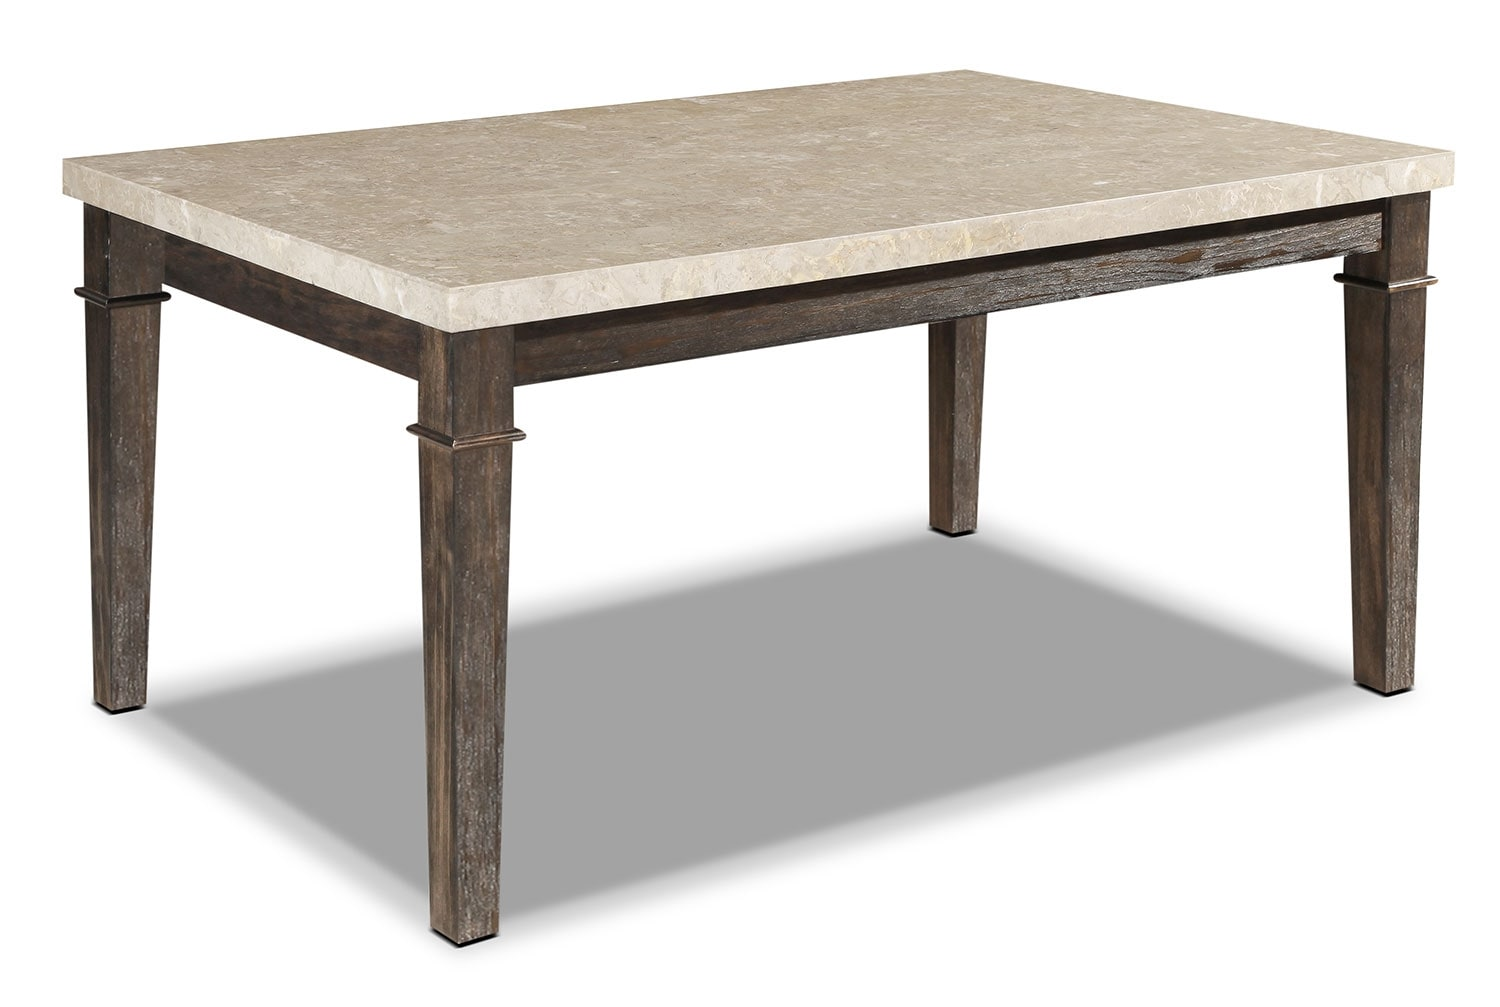 Aldo dining table the brick for Restaurant tables